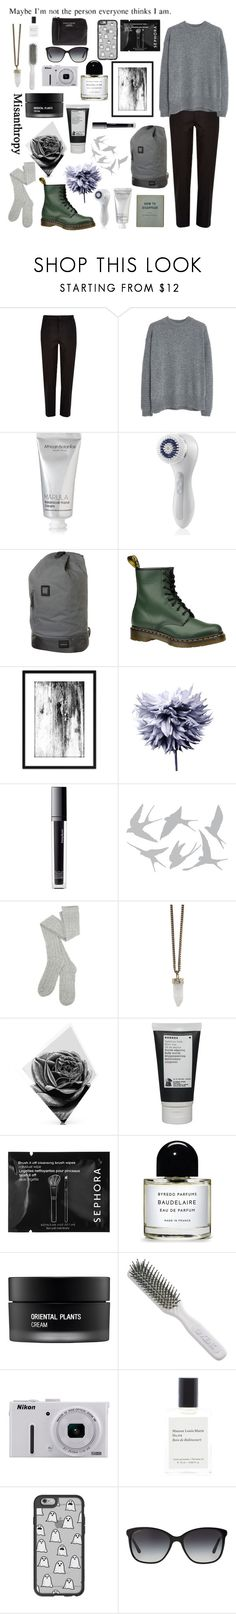 """""""it's my character again"""" by the-girl-who-fell-from-the-sky ❤ liked on Polyvore featuring MANGO, African Botanics, Clarisonic, Nixon, Dr. Martens, Art Addiction, Make, Universal Lighting and Decor, Givenchy and Maxwell Dickson"""